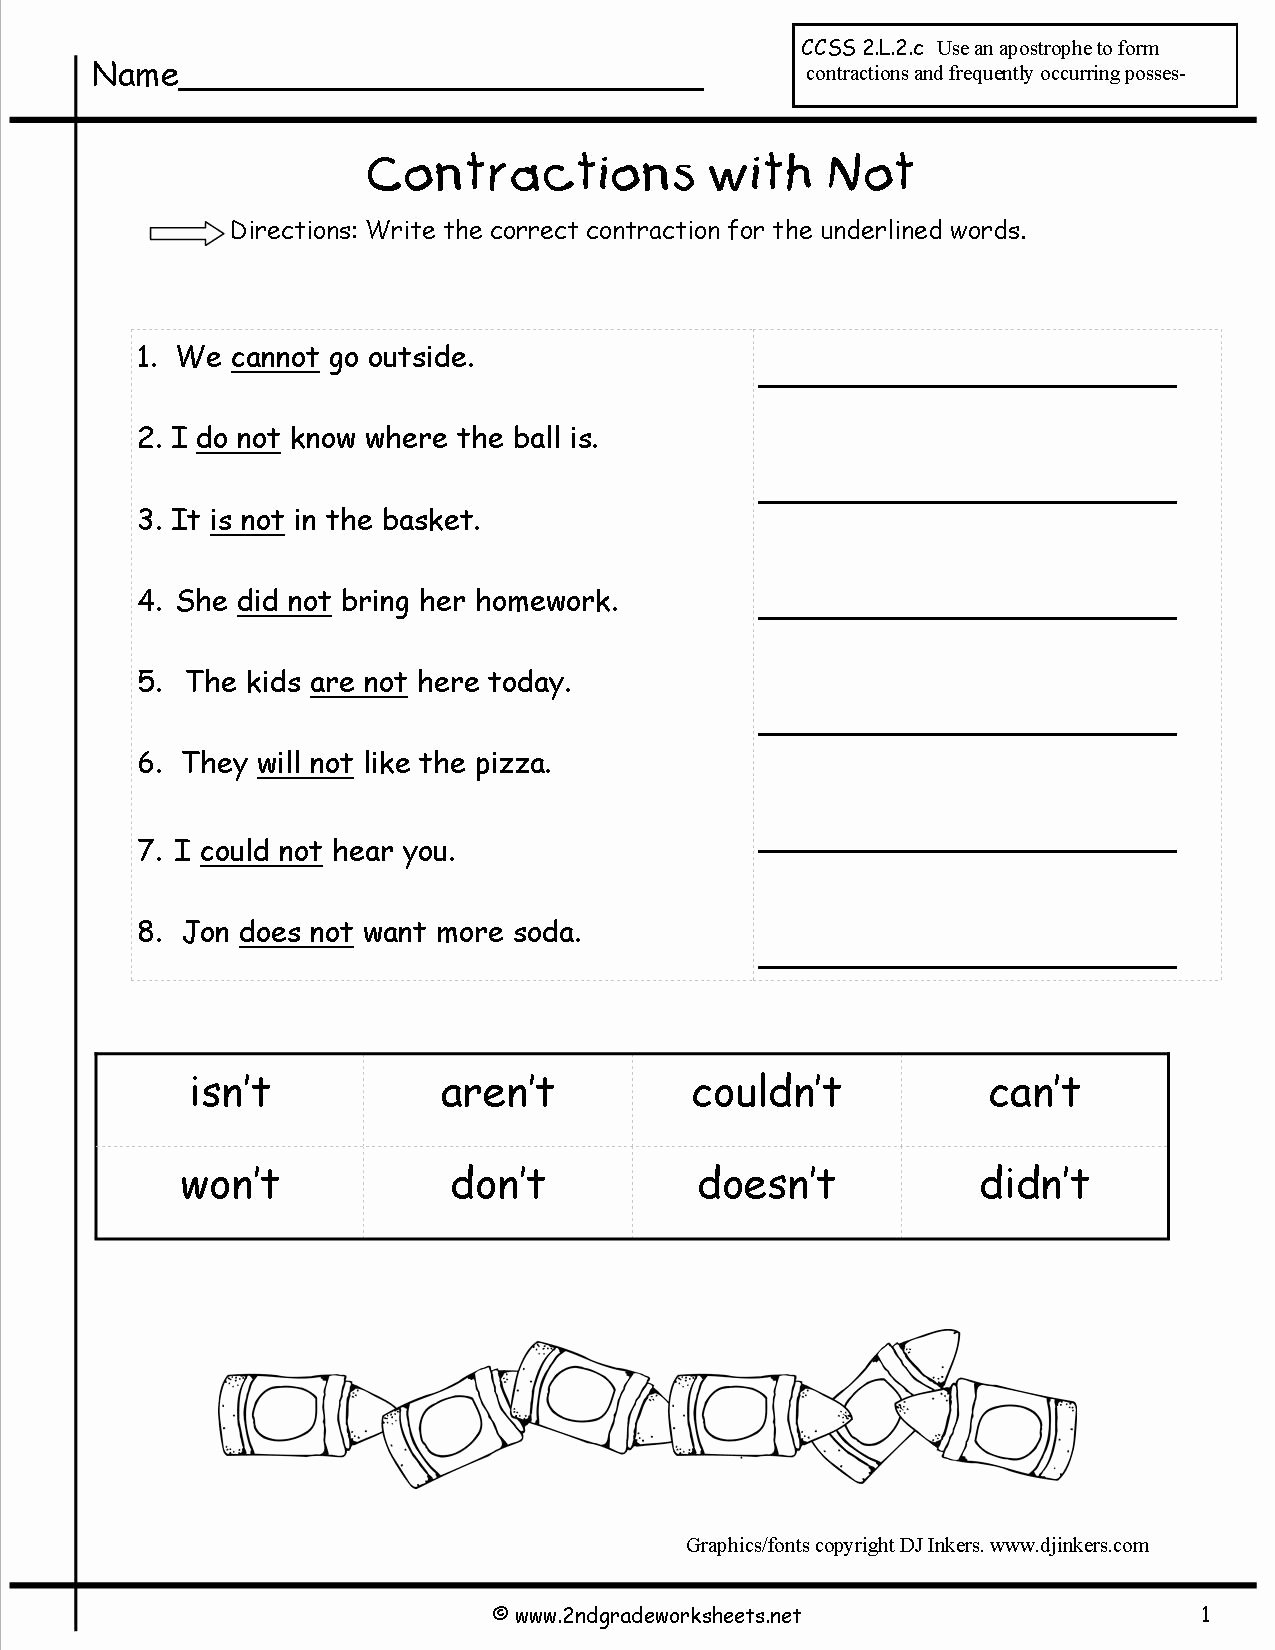 Contractions Worksheet 3rd Grade New Free Contractions Worksheets and Printouts